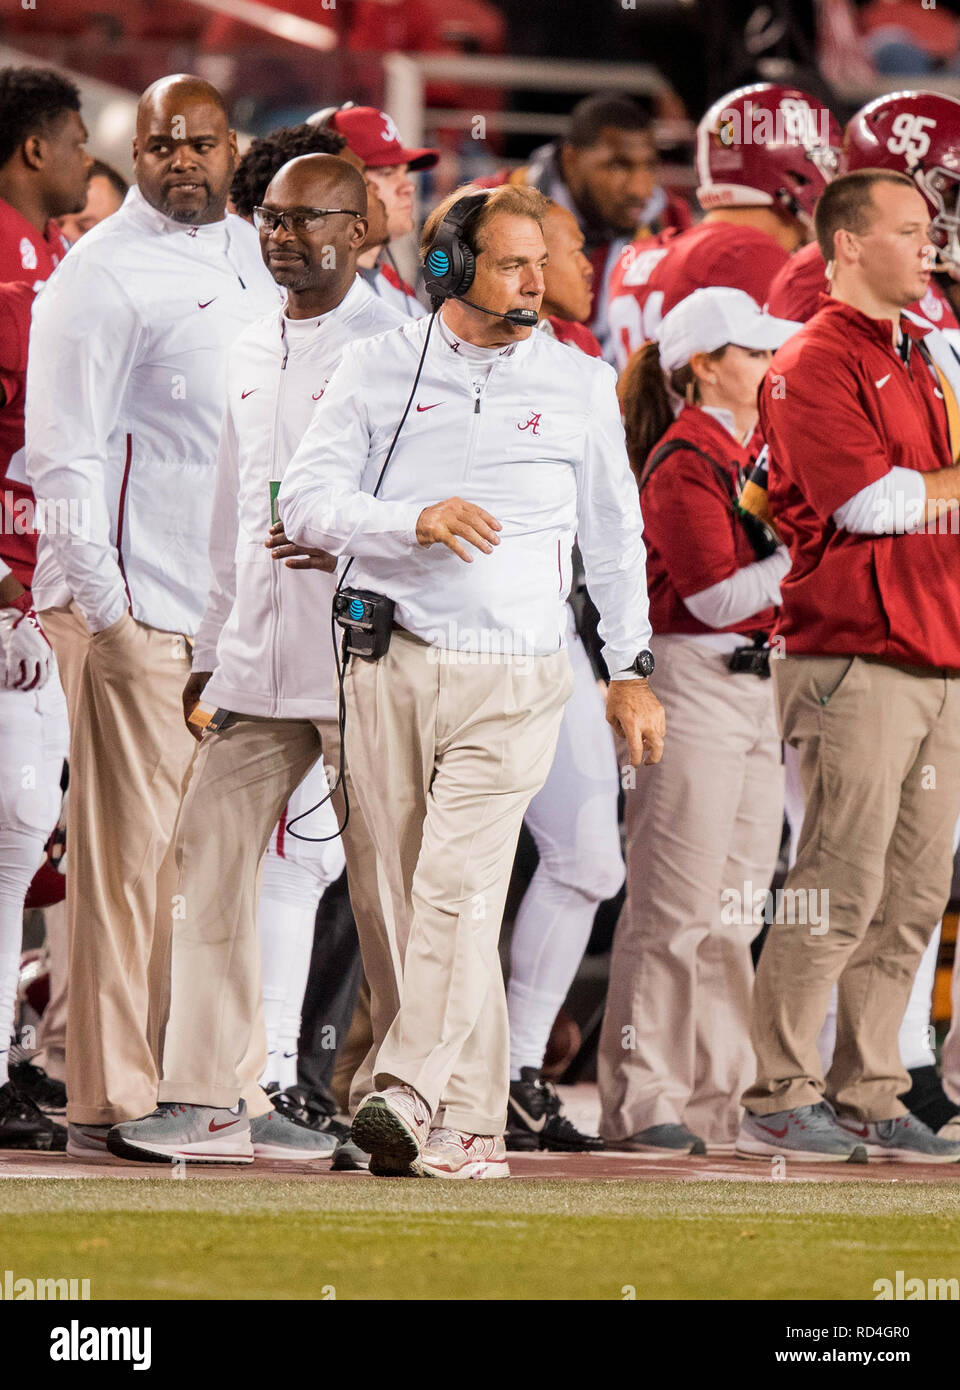 January 7, 201 Santa Clara, CA.Alabama head coach Nick Saban paces the sideline during the national championship game between the Alabama Crimson Tide and the Clemson Tigers at Levi Stadium on January 7, 2019. Clemson defeated Alabama 4416. (Absolute Complete Photographer & Company Credit: Juan Lainez/MarinMedia.org/Cal Sport Media (Network Television please contact your Sales Representative for Television usage.) (Television usage must over-burn ''MarinMedia'' on the top right corner of the screen to use on television) - Stock Image